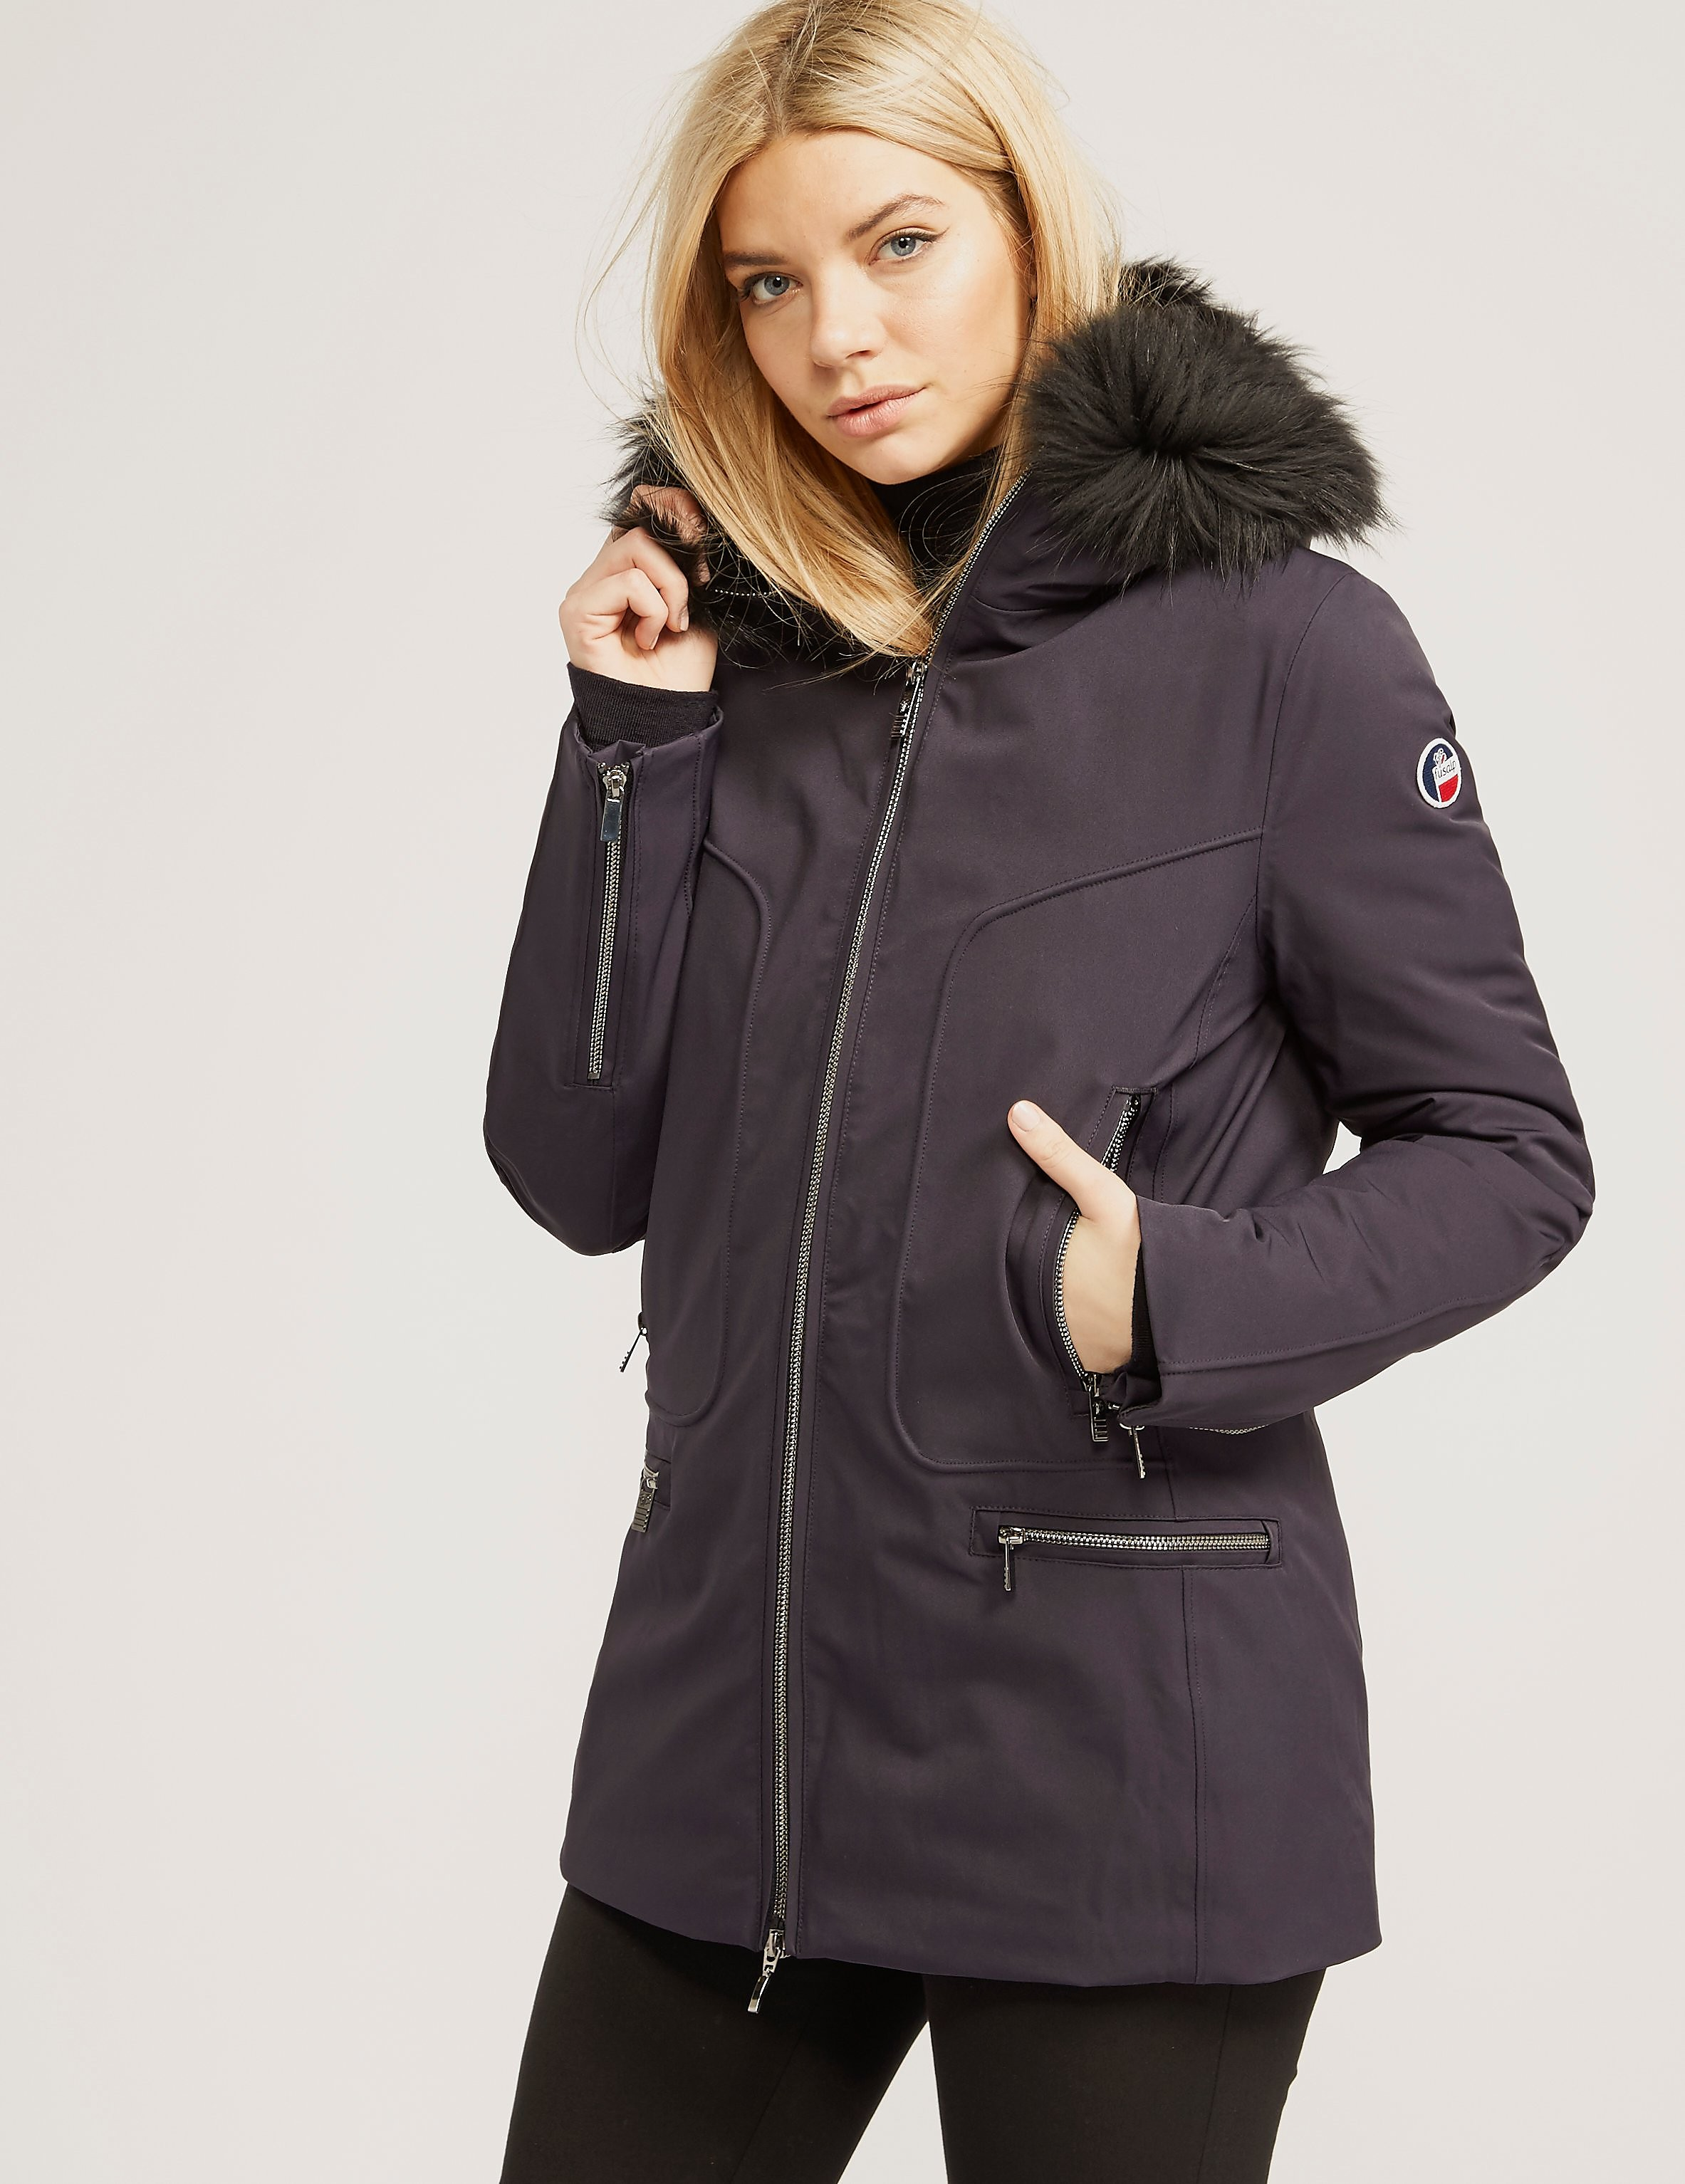 Fusalp Long Parka Jacket